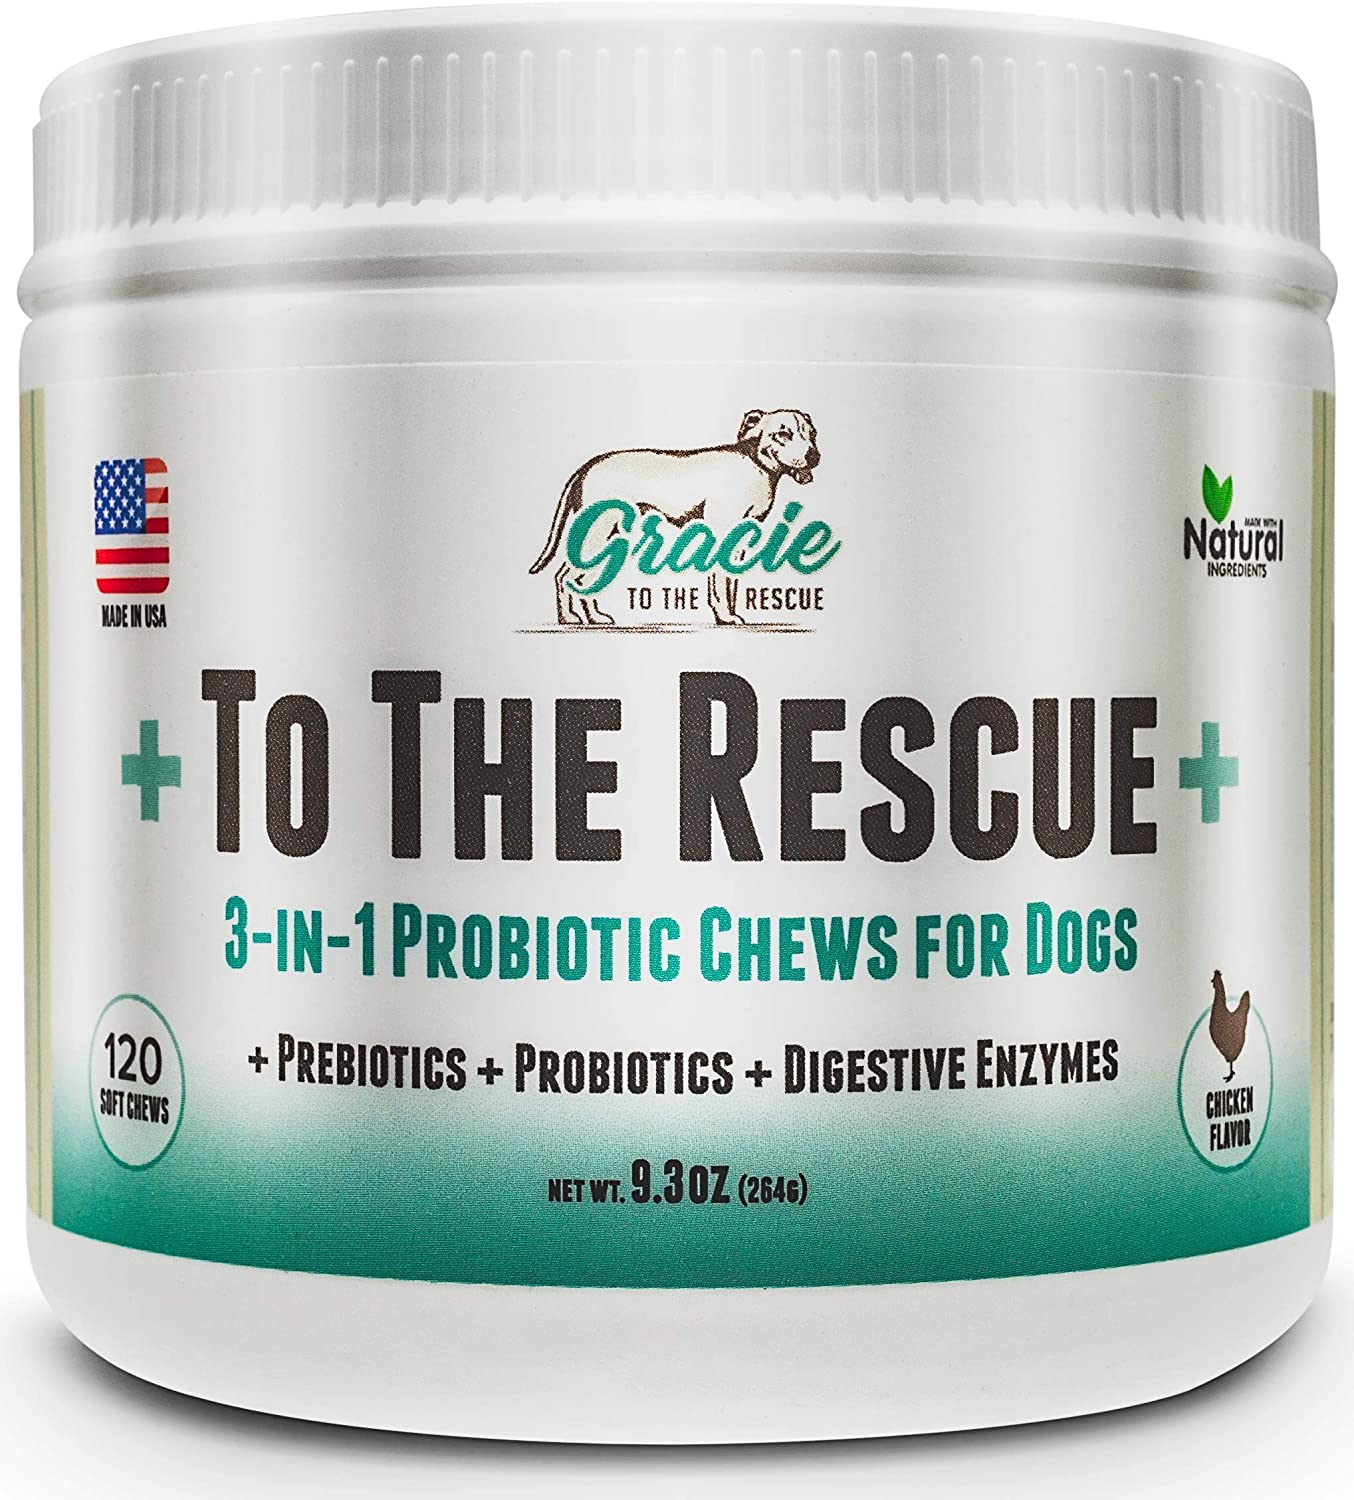 Probiotics for Dogs – 120 Soft Chews – All Natural Dog Probiotics, Prebiotics and Digestive Enzymes for Constipation, Immune Support, Diarrhea, Upset Stomach, and UTI s To The Rescue